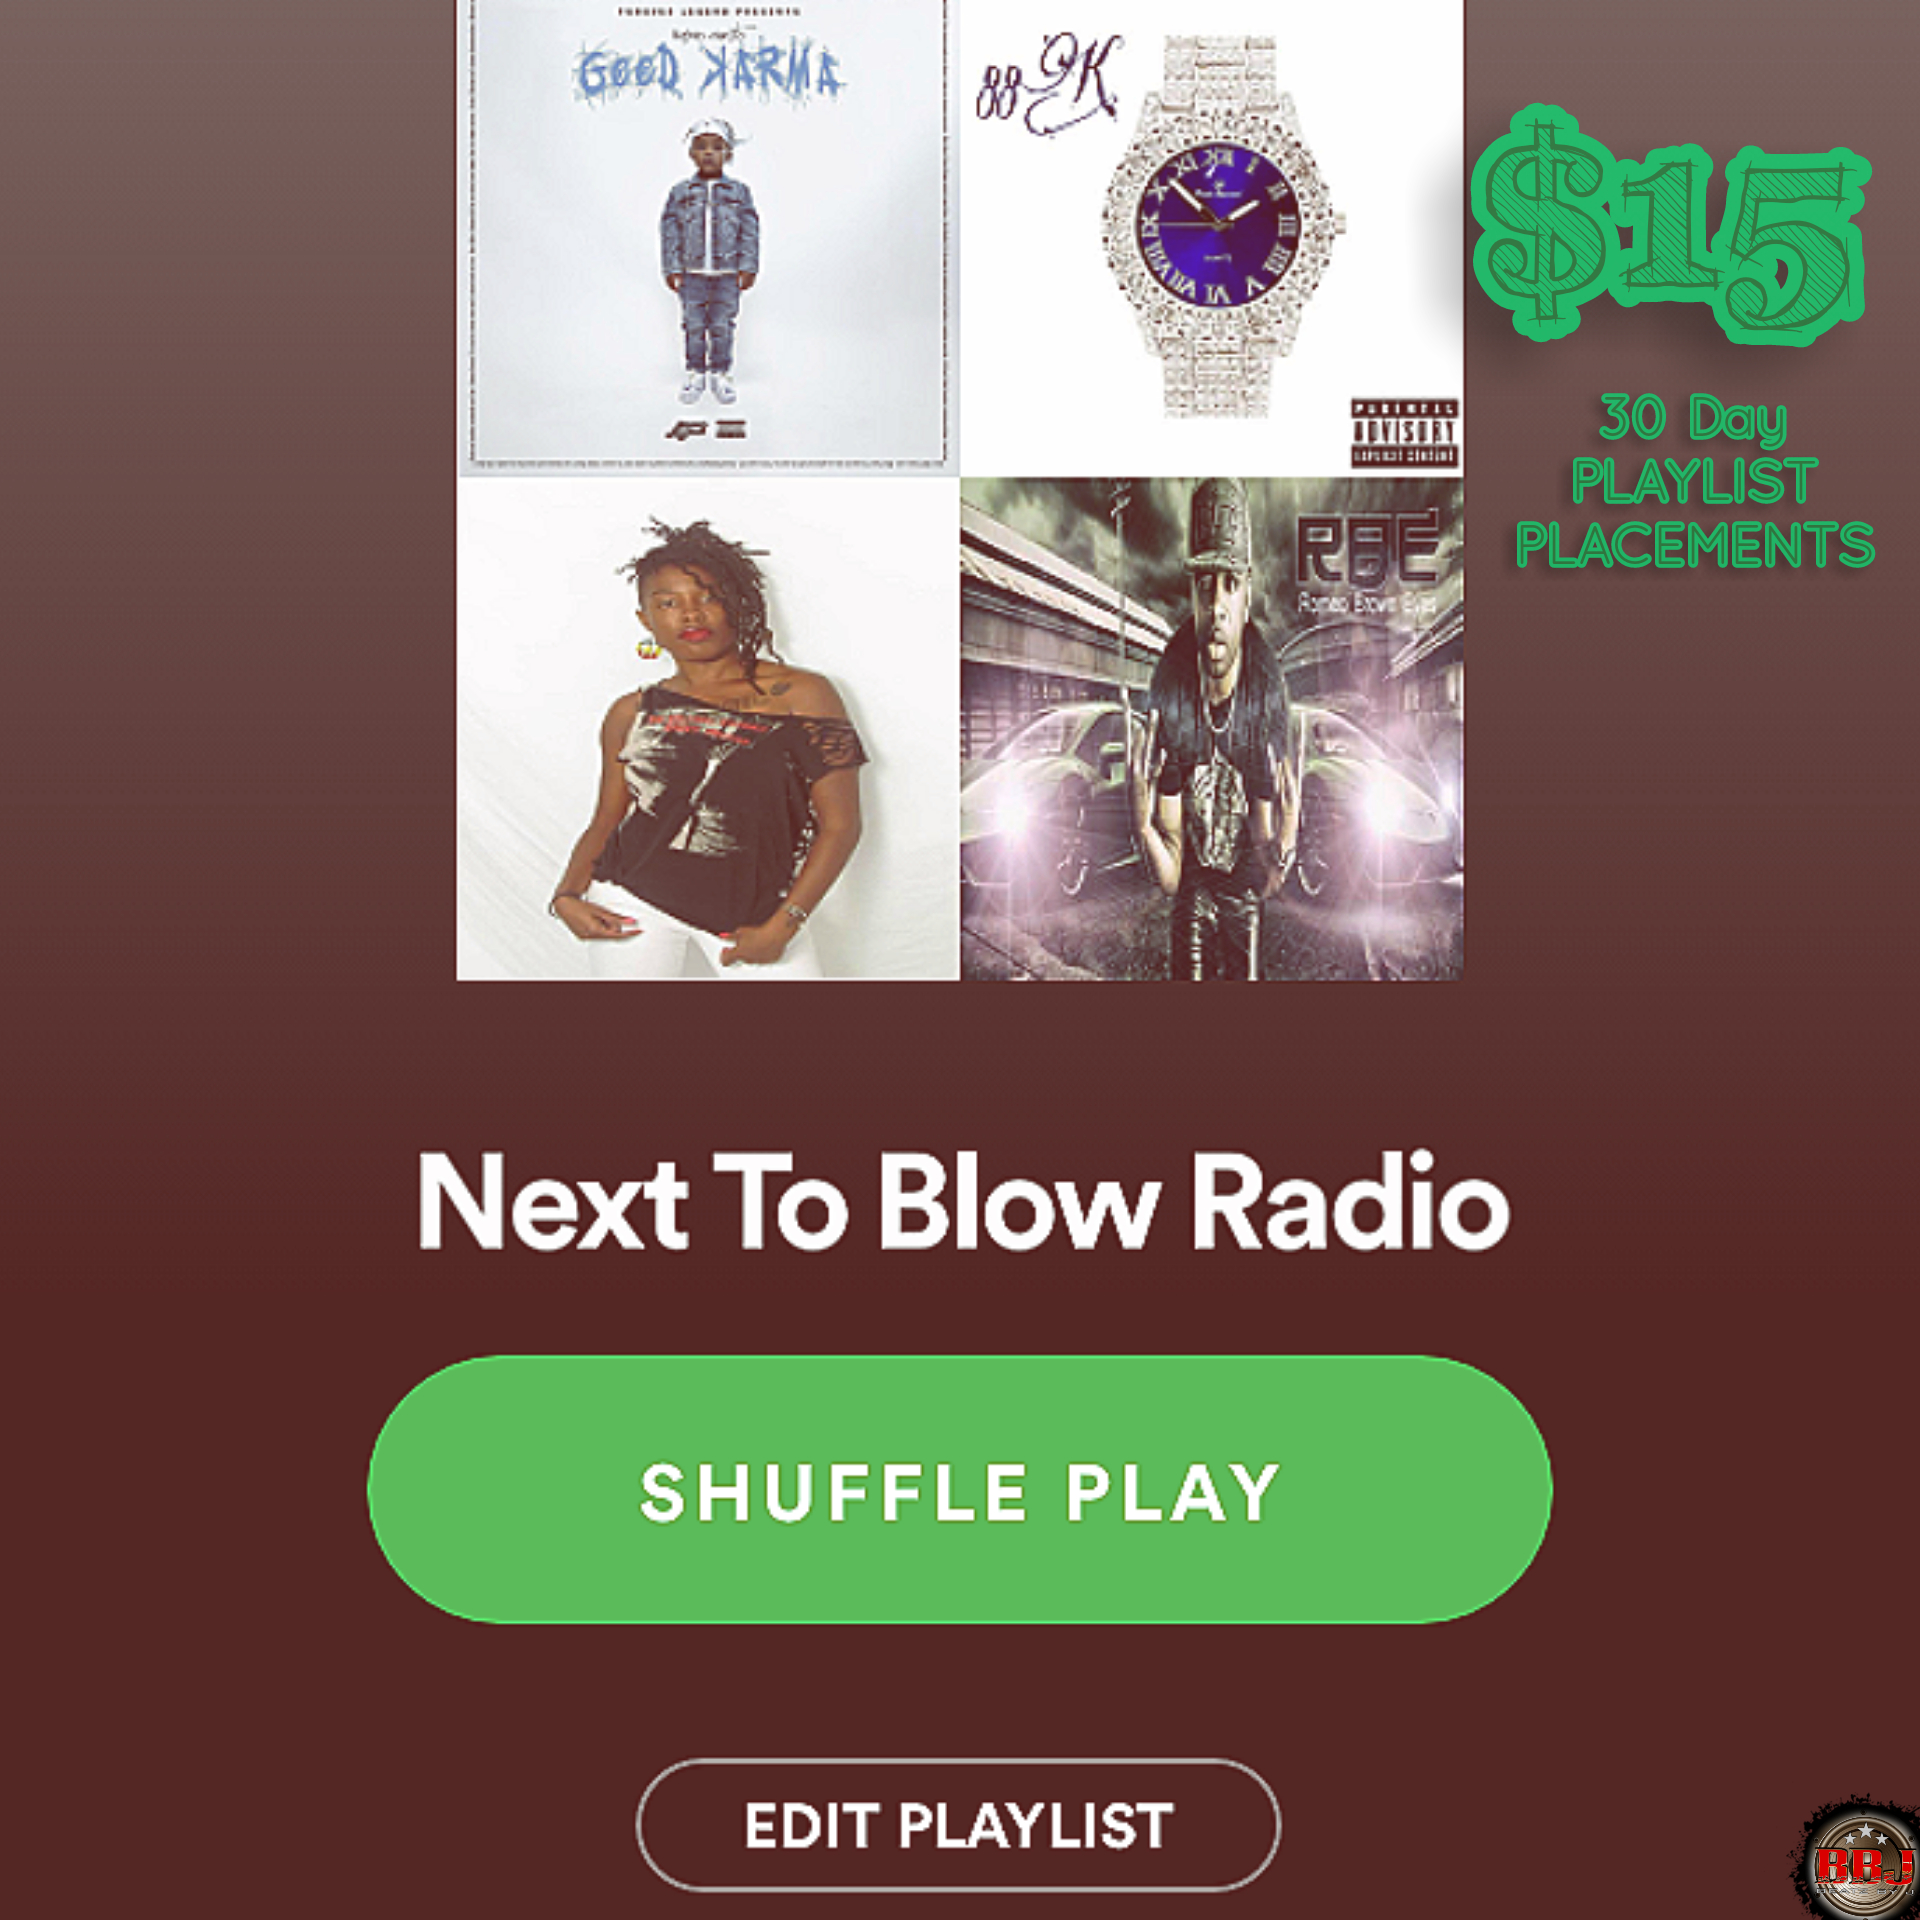 30 Day Playlist Placements add 1 song to active playlist boost streams organically